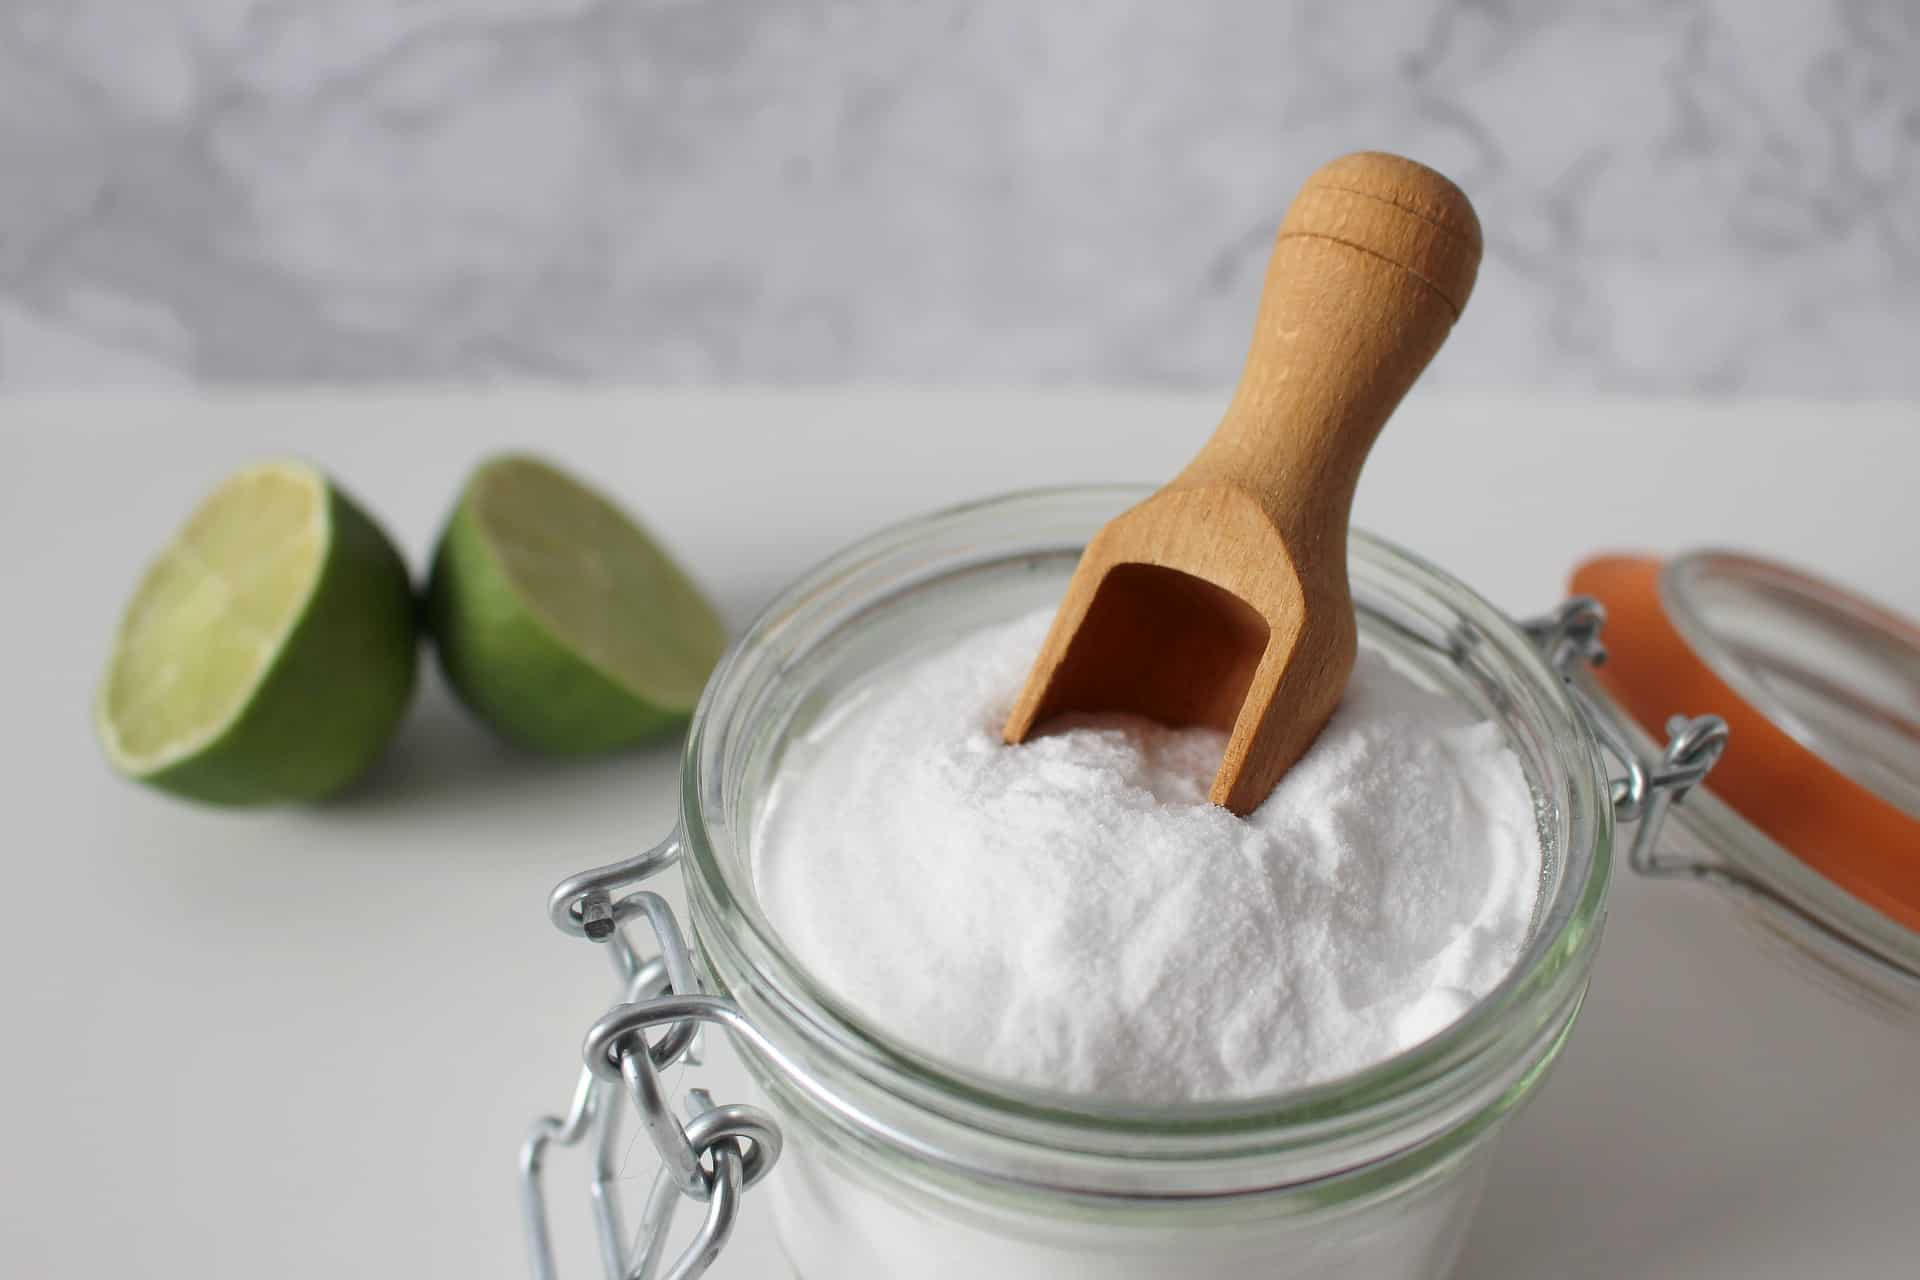 Can Drinking Baking Soda Help Lose Weight